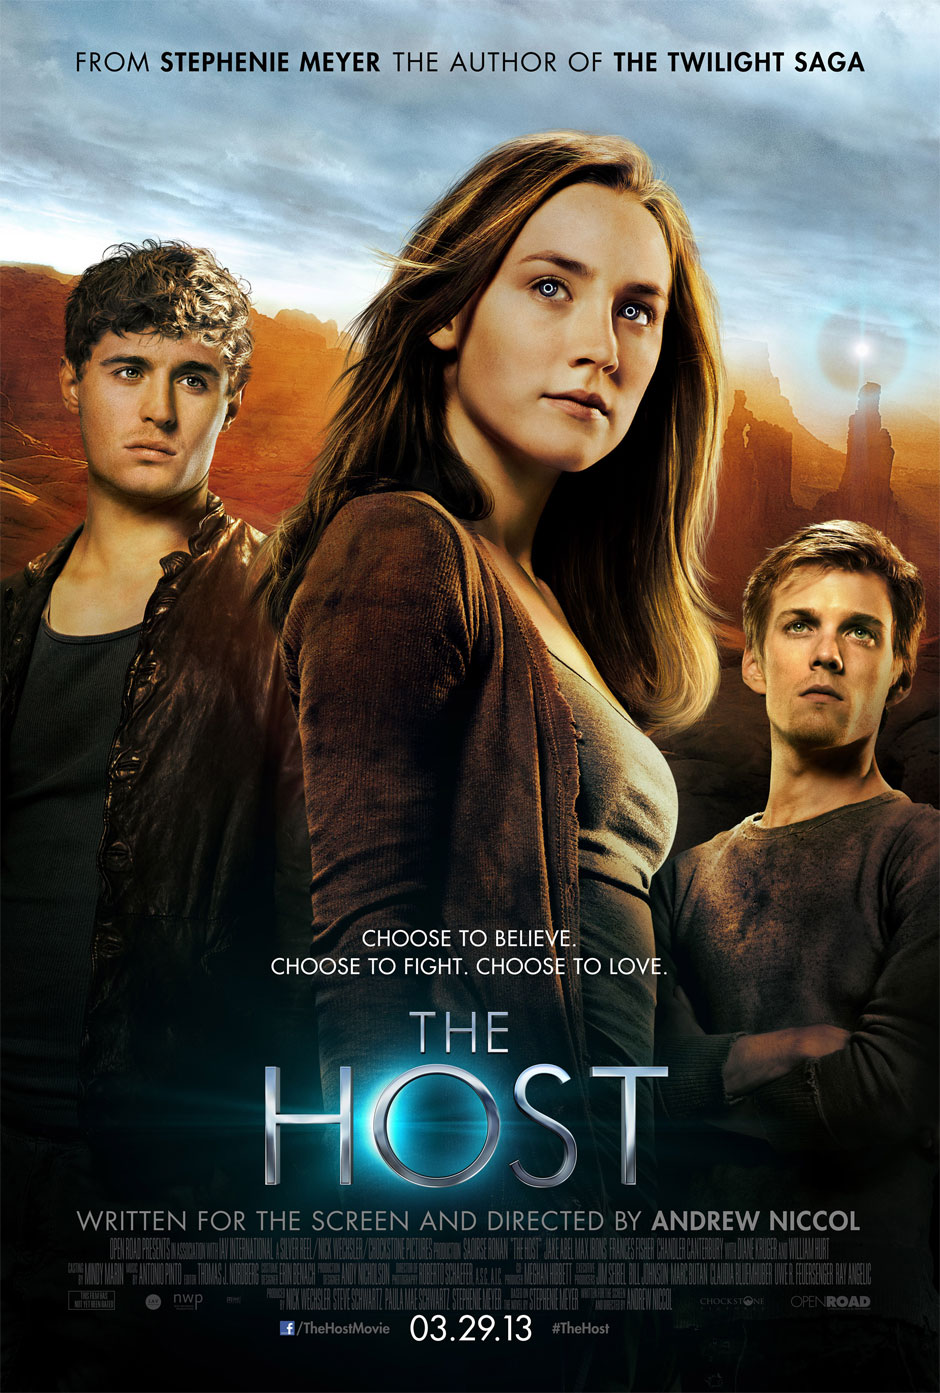 The Host [2013] [HDrip] [Sub Español] [FS-RG-BS]